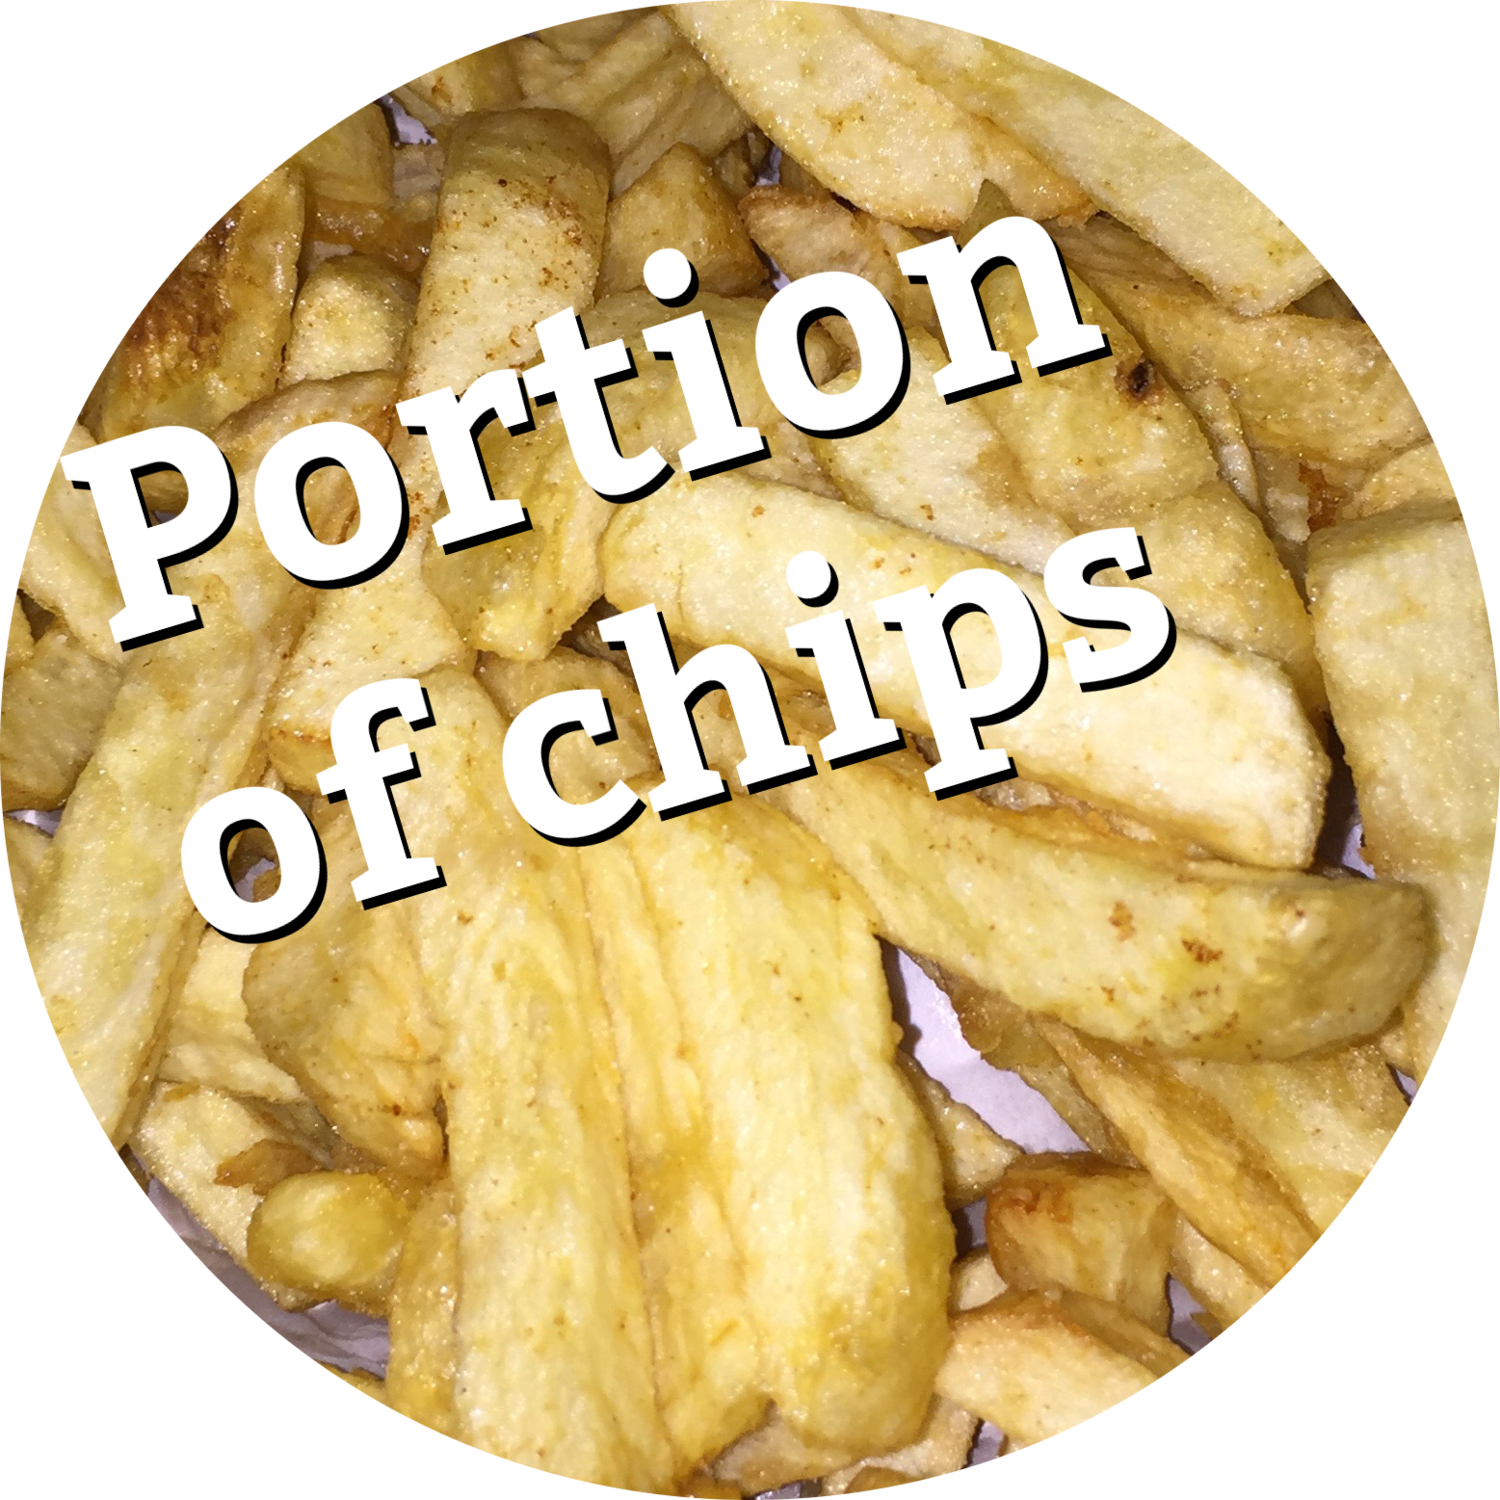 The chip shop review site